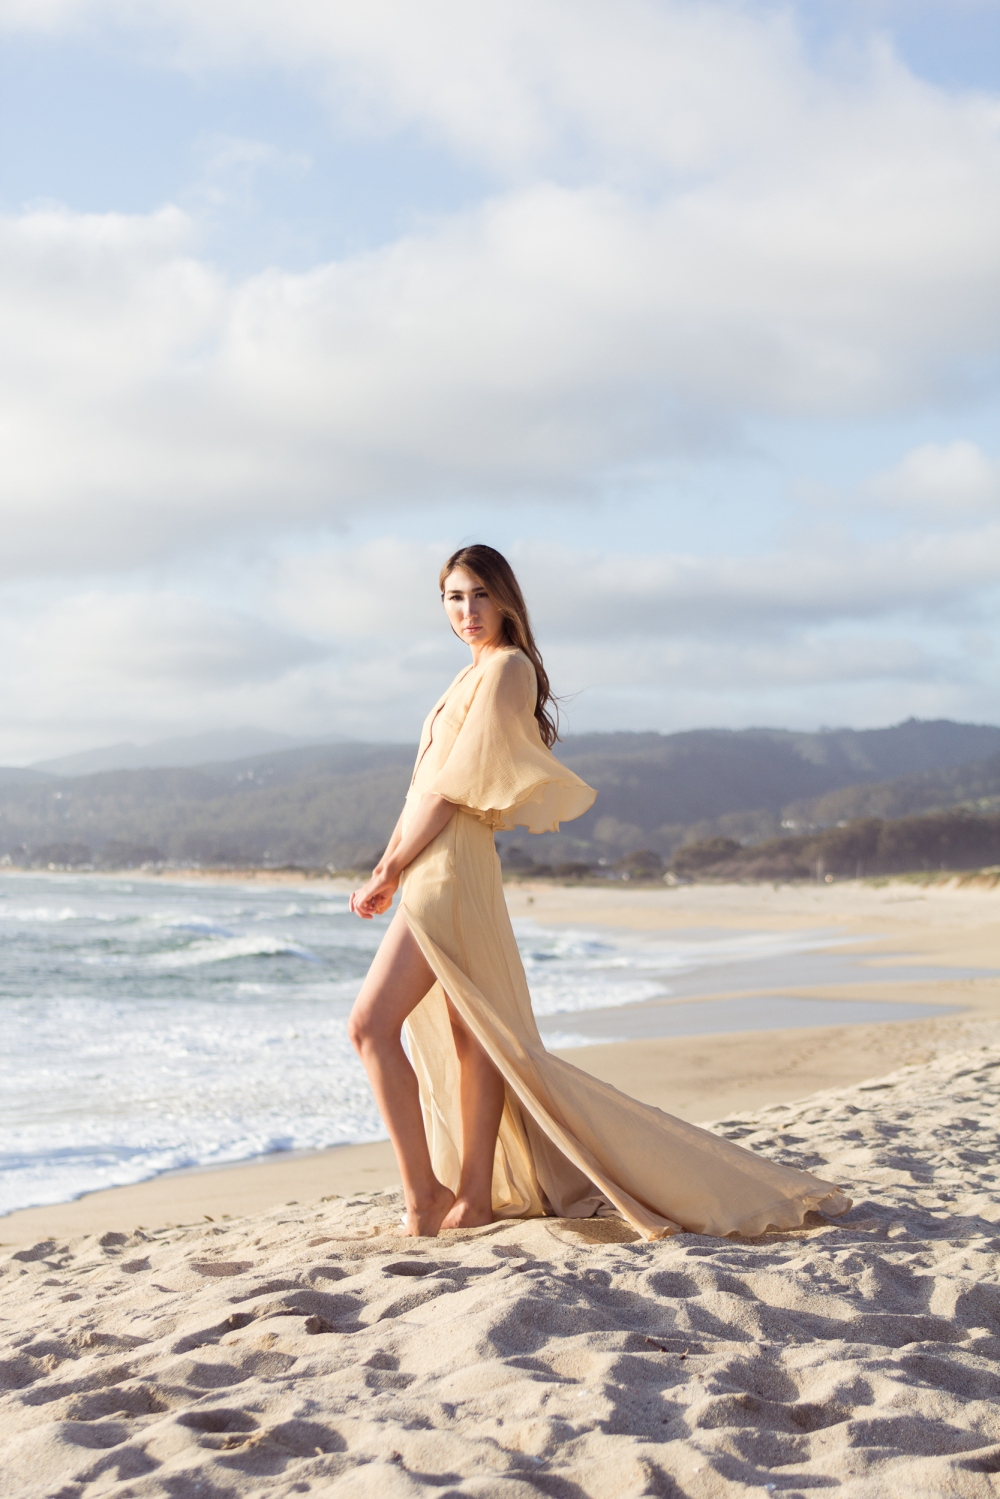 Of the Sea Half Moon Bay Alyssa Nicole Silk Gown1